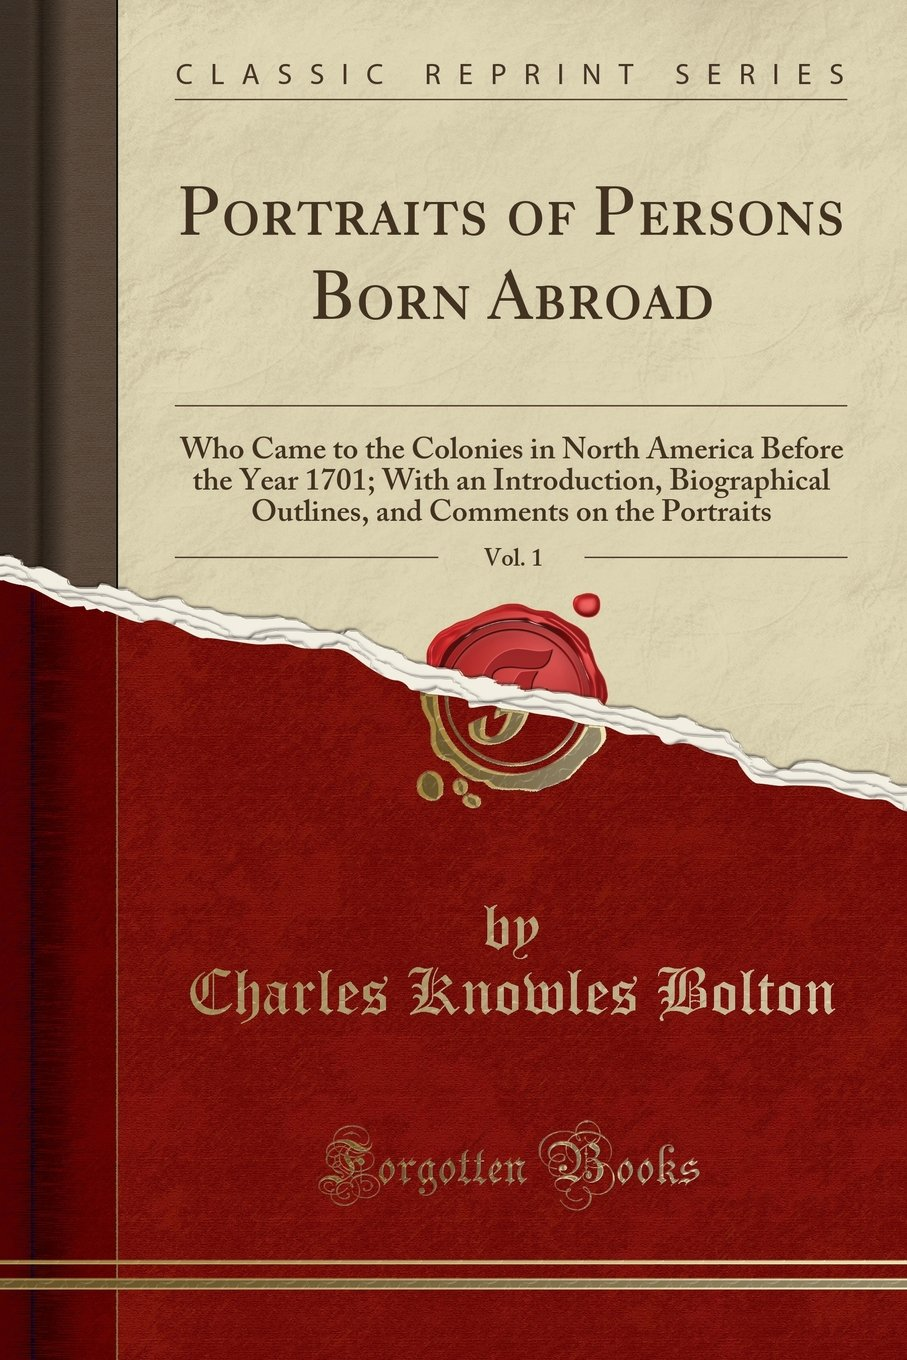 Read Online Portraits of Persons Born Abroad, Vol. 1: Who Came to the Colonies in North America Before the Year 1701; With an Introduction, Biographical Outlines, and Comments on the Portraits (Classic Reprint) ebook